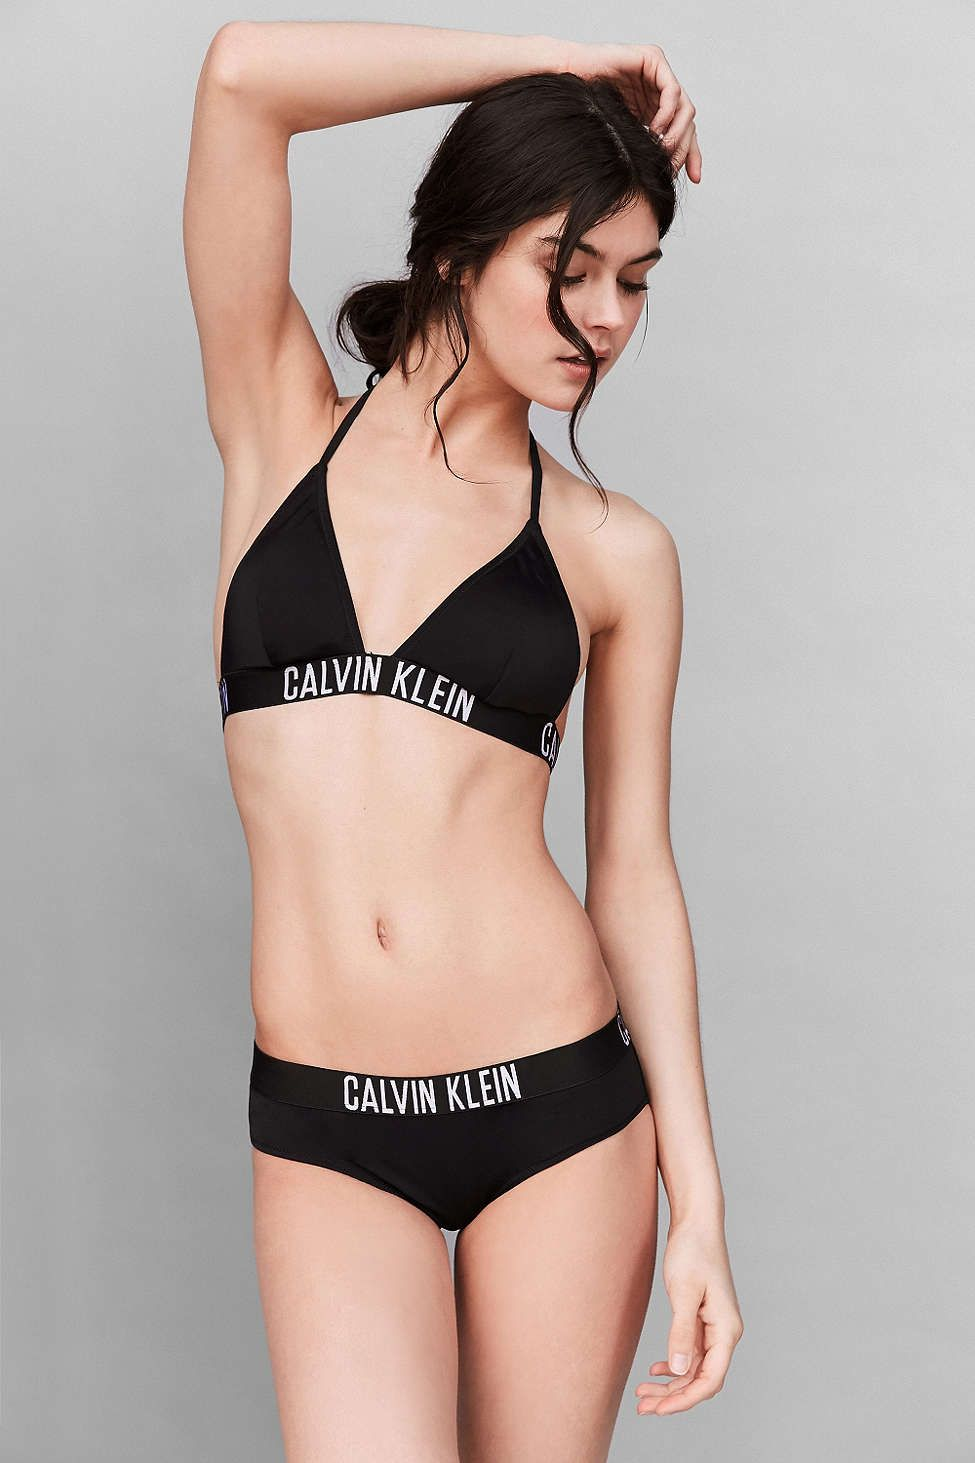 Pay With Visa Cheap Price Cheap Outlet Store Calvin Klein Layered Swimsuit Bottom w/ Tags Gj0Bv8BY